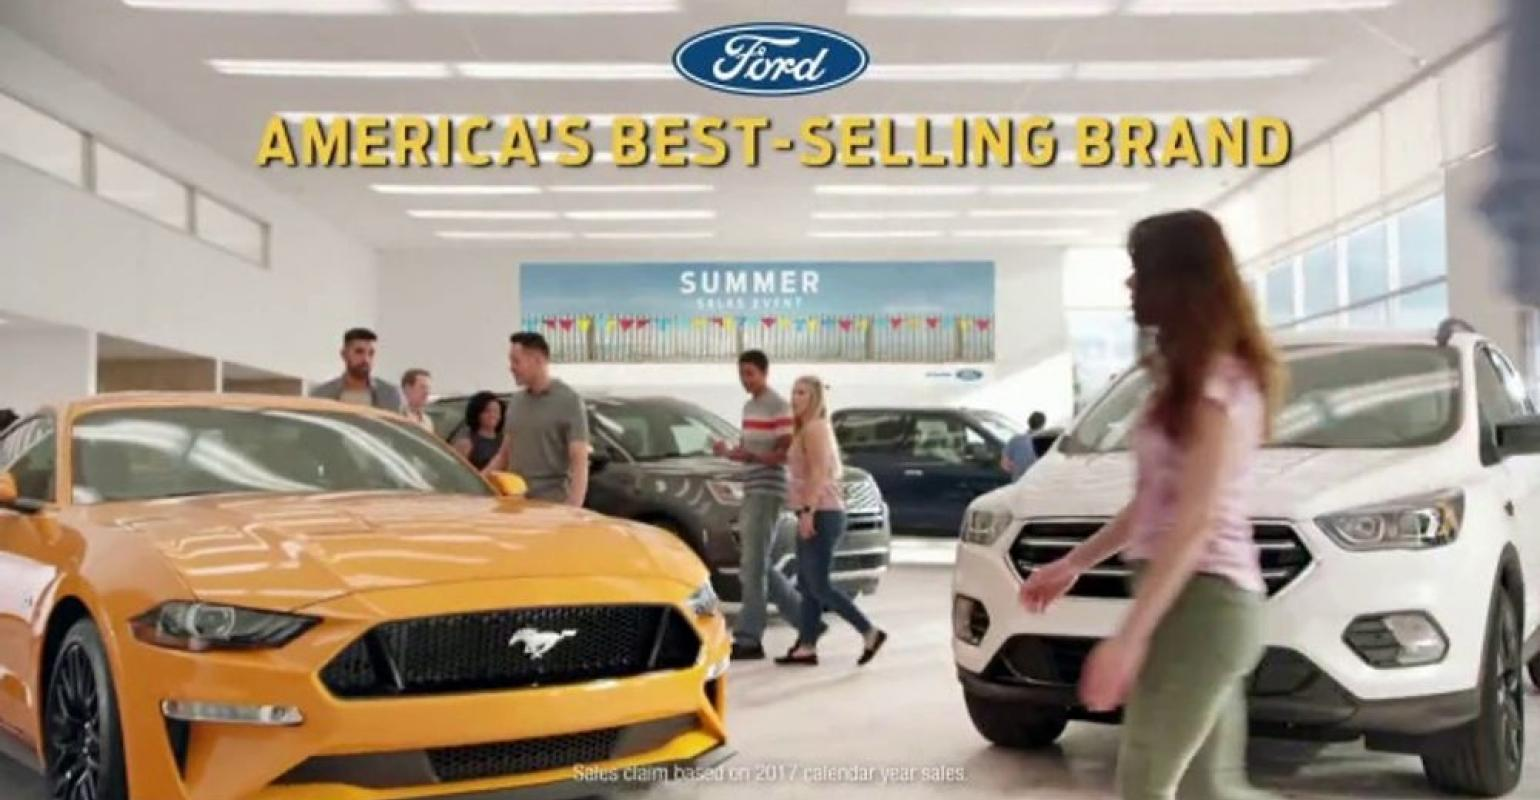 Ford Spot Garners Most Viewers Among Summer S Event Ads